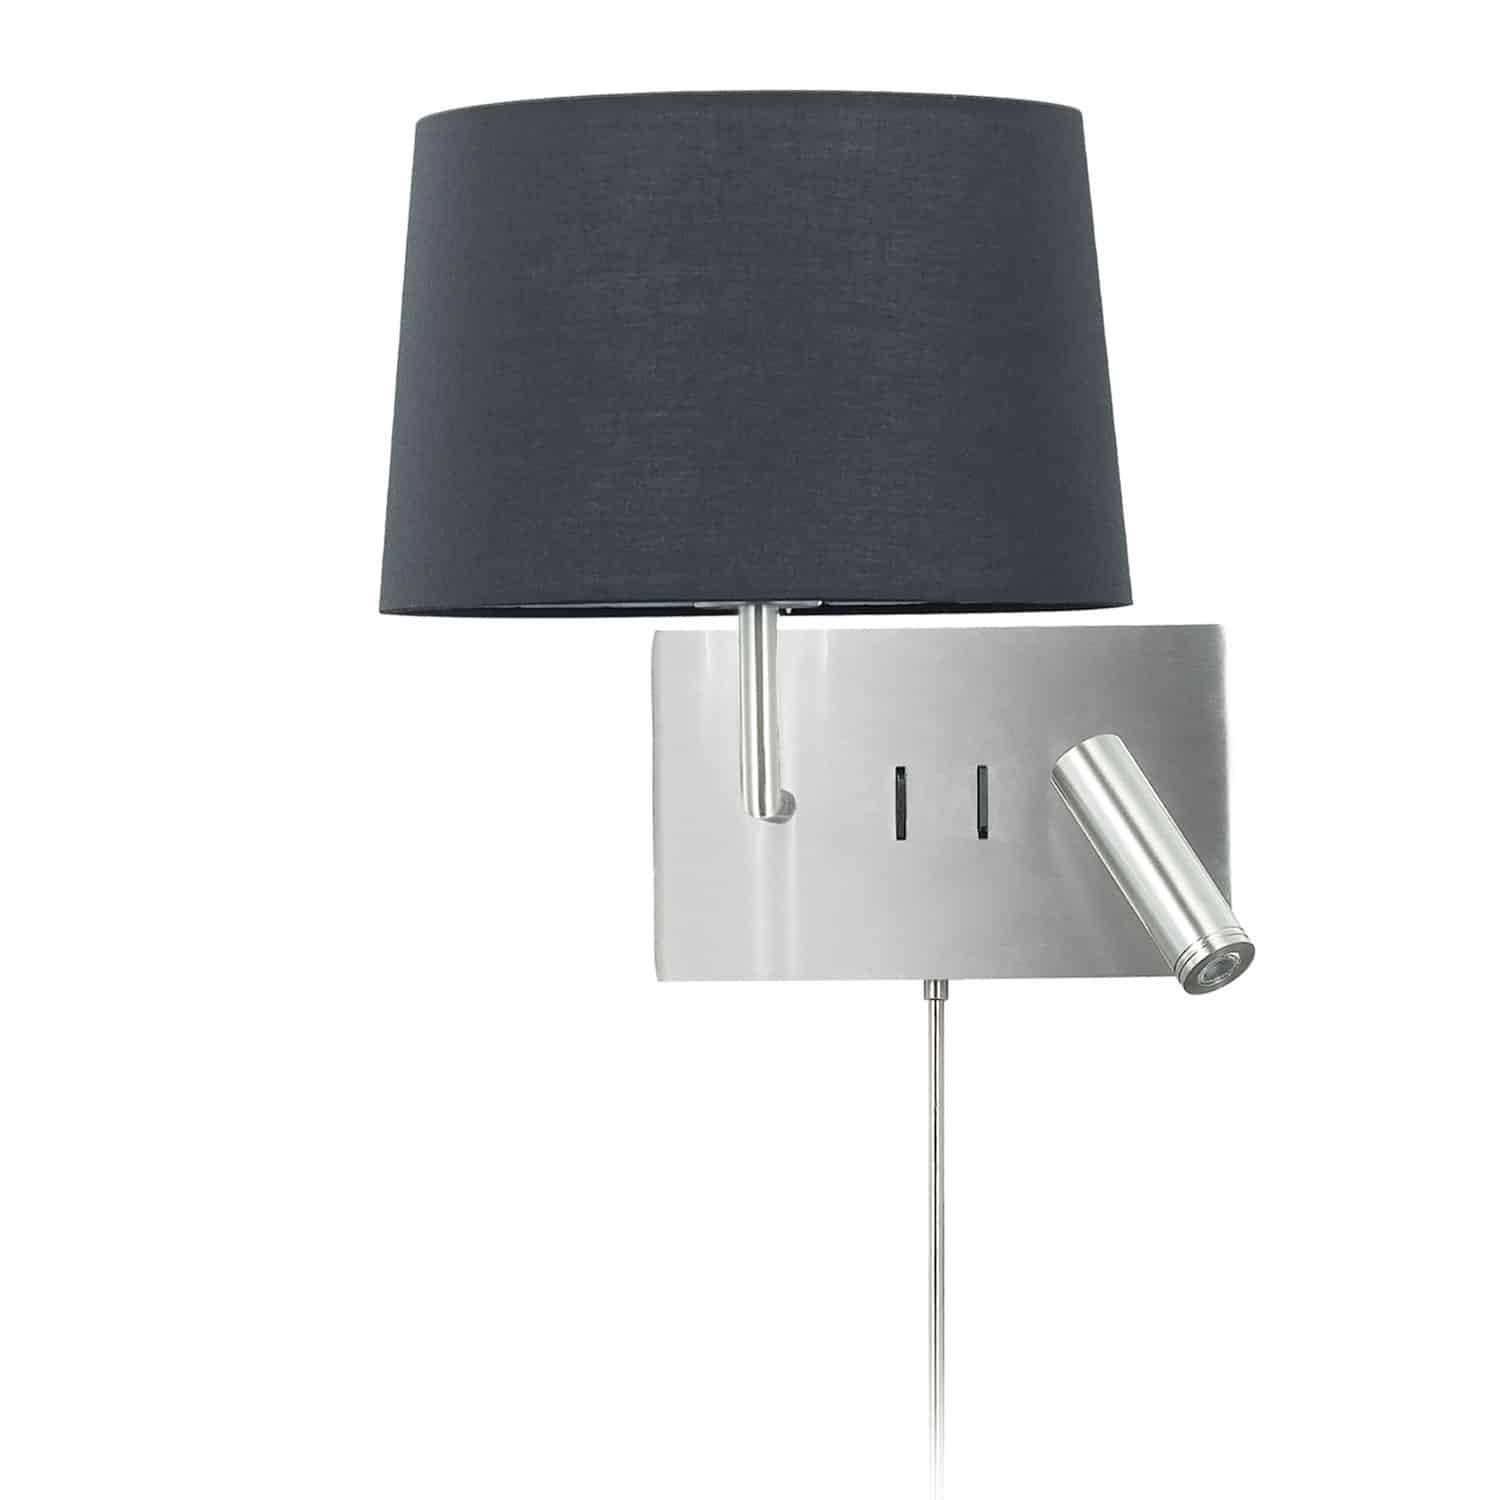 1 Light Incandescent Wall Scone with 3W Reading Light , Satin Chrome with Black Shade